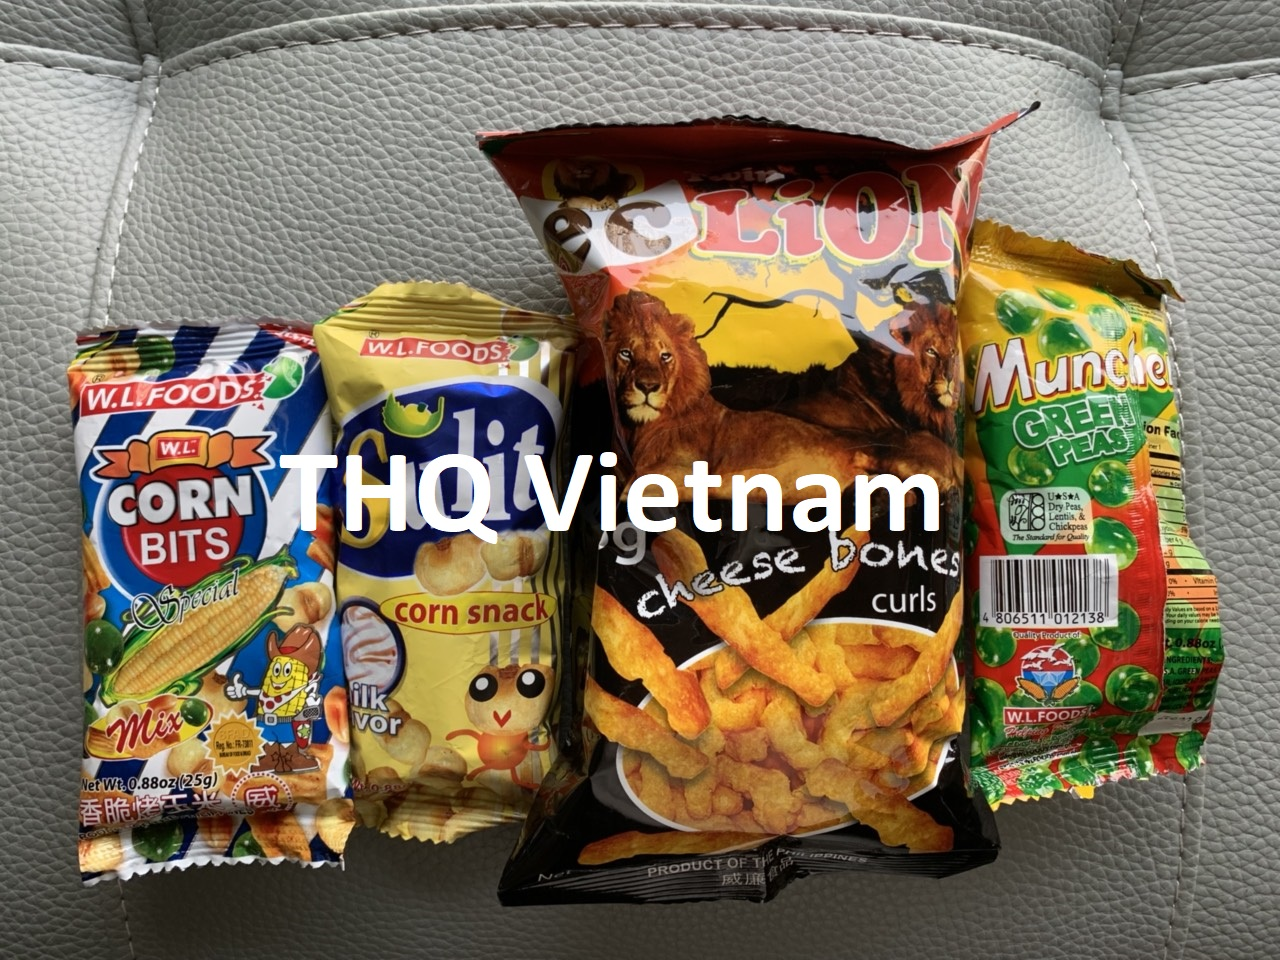 https://www.thqvietnam.com/upload/files/z1549063591080_41eeaf5cf7217403db03eb405d839462.jpg